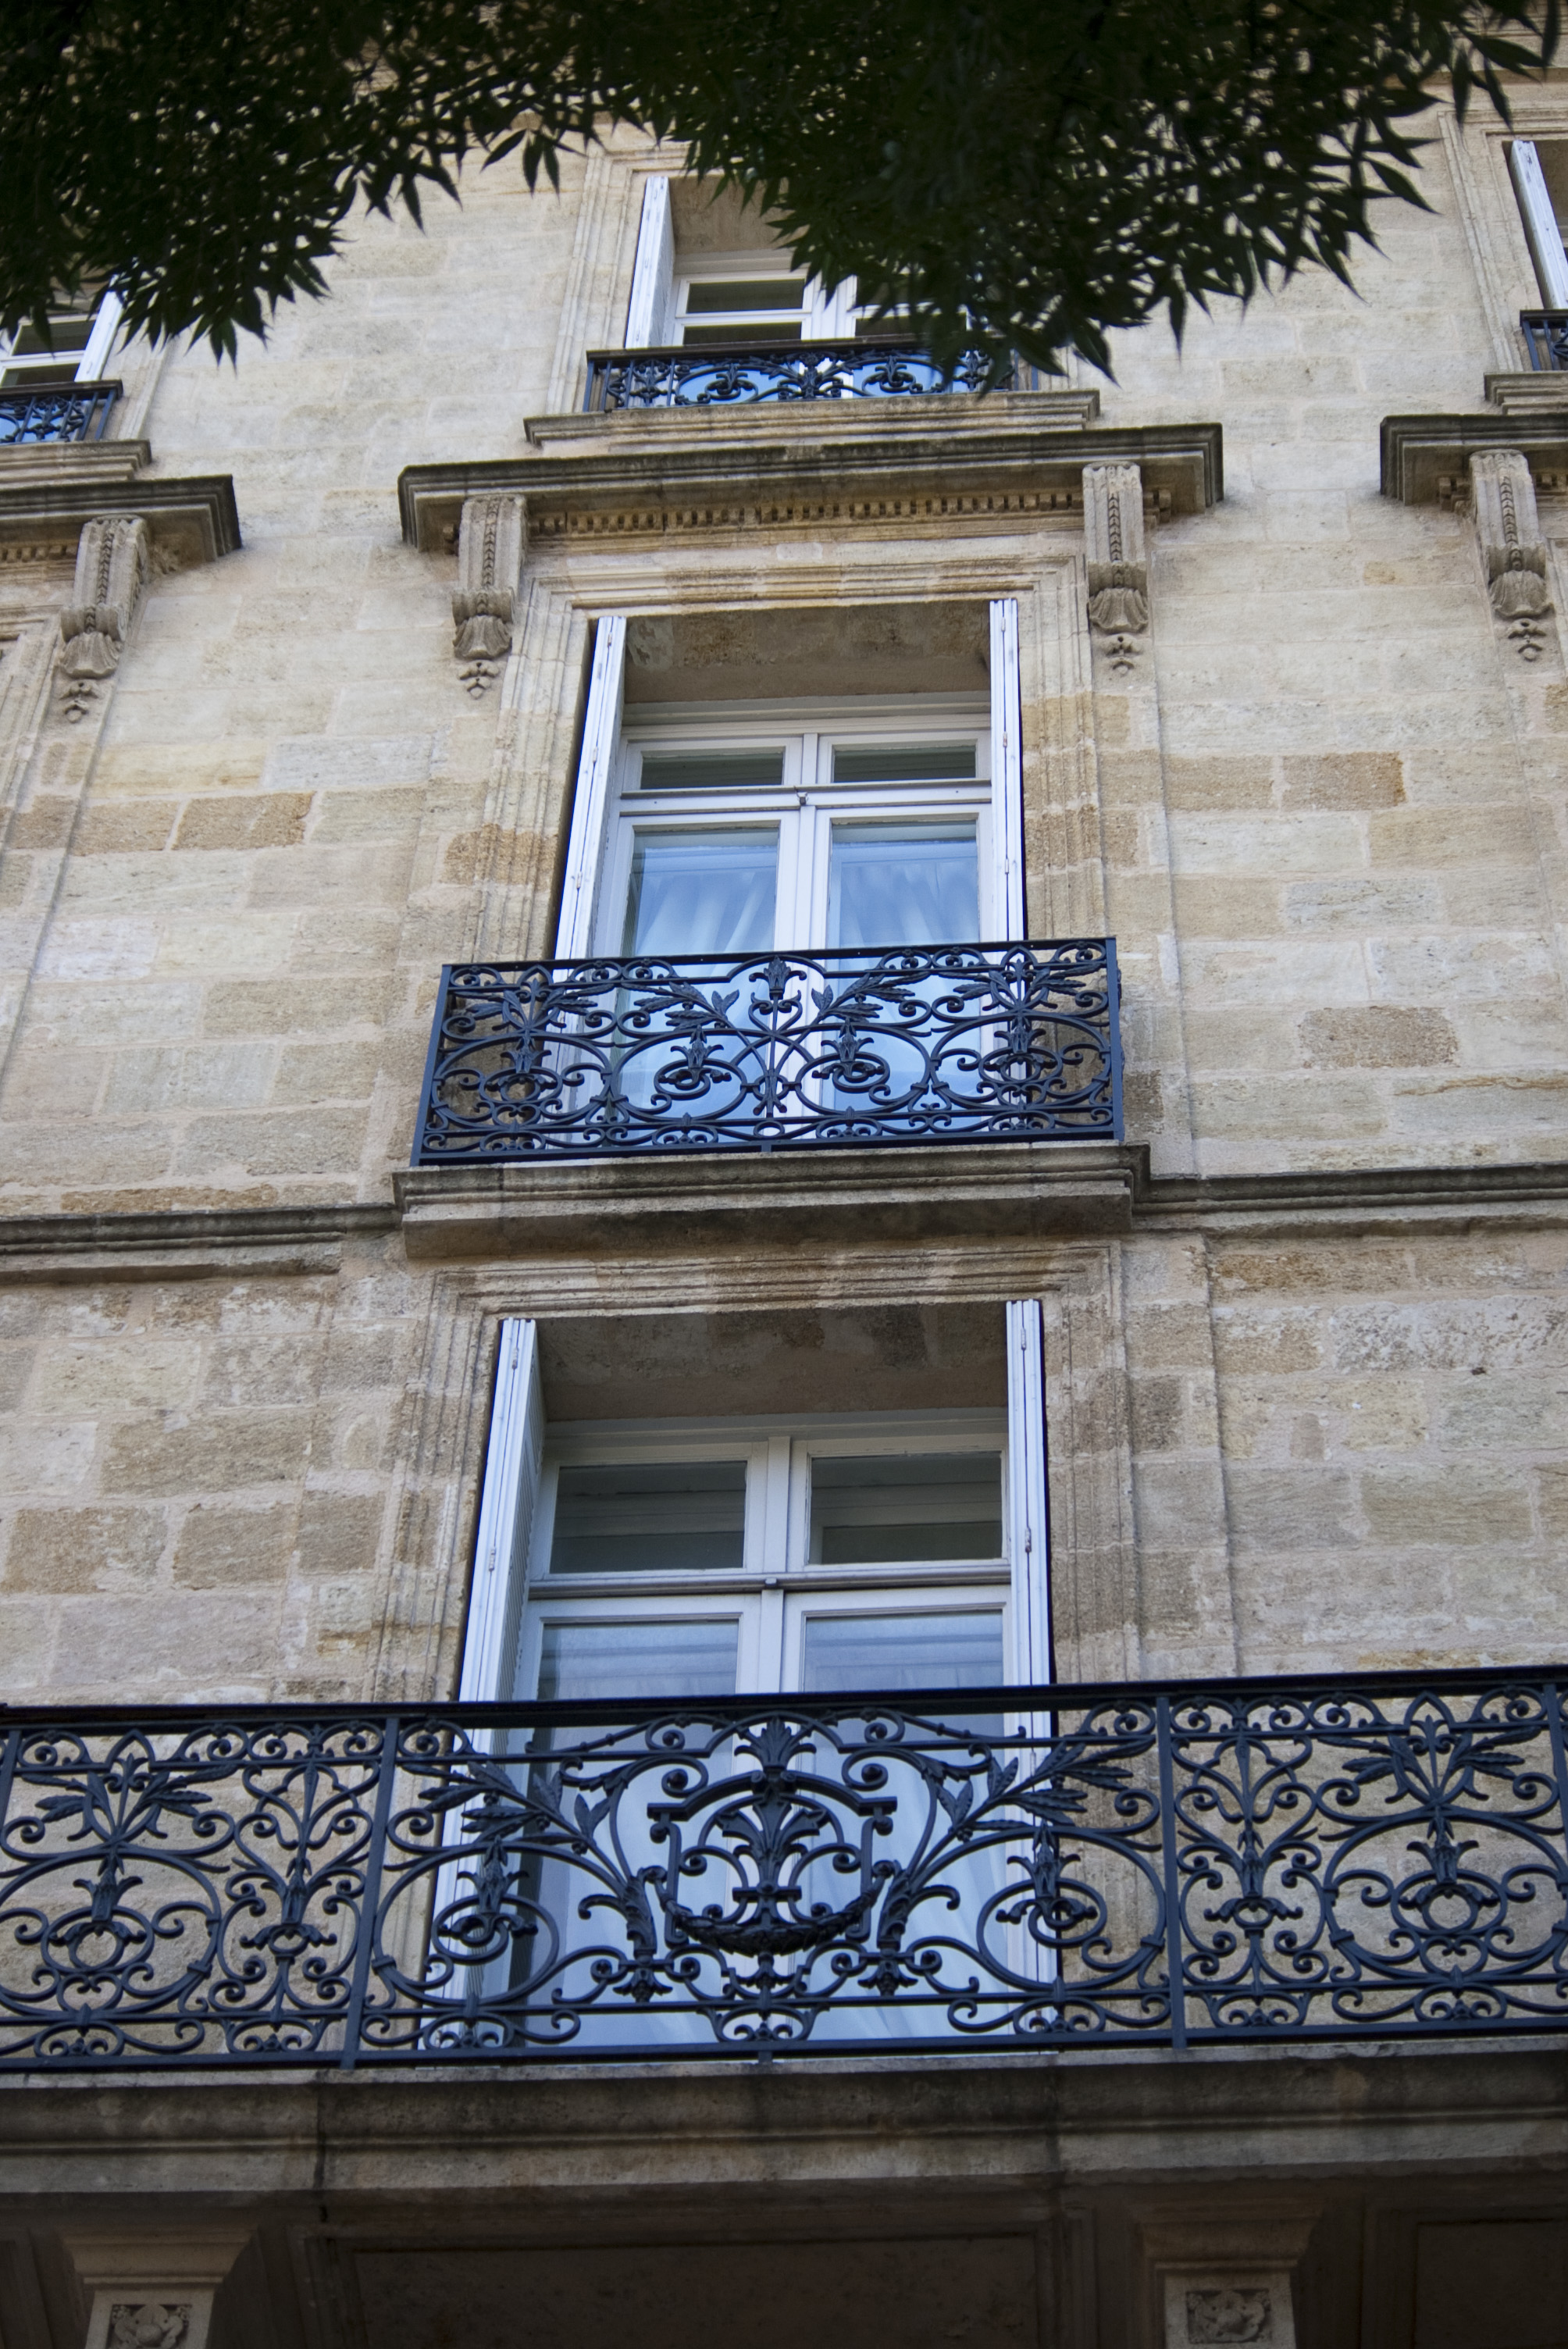 Free stock photo 2776 french windows freeimageslive for What is a french balcony